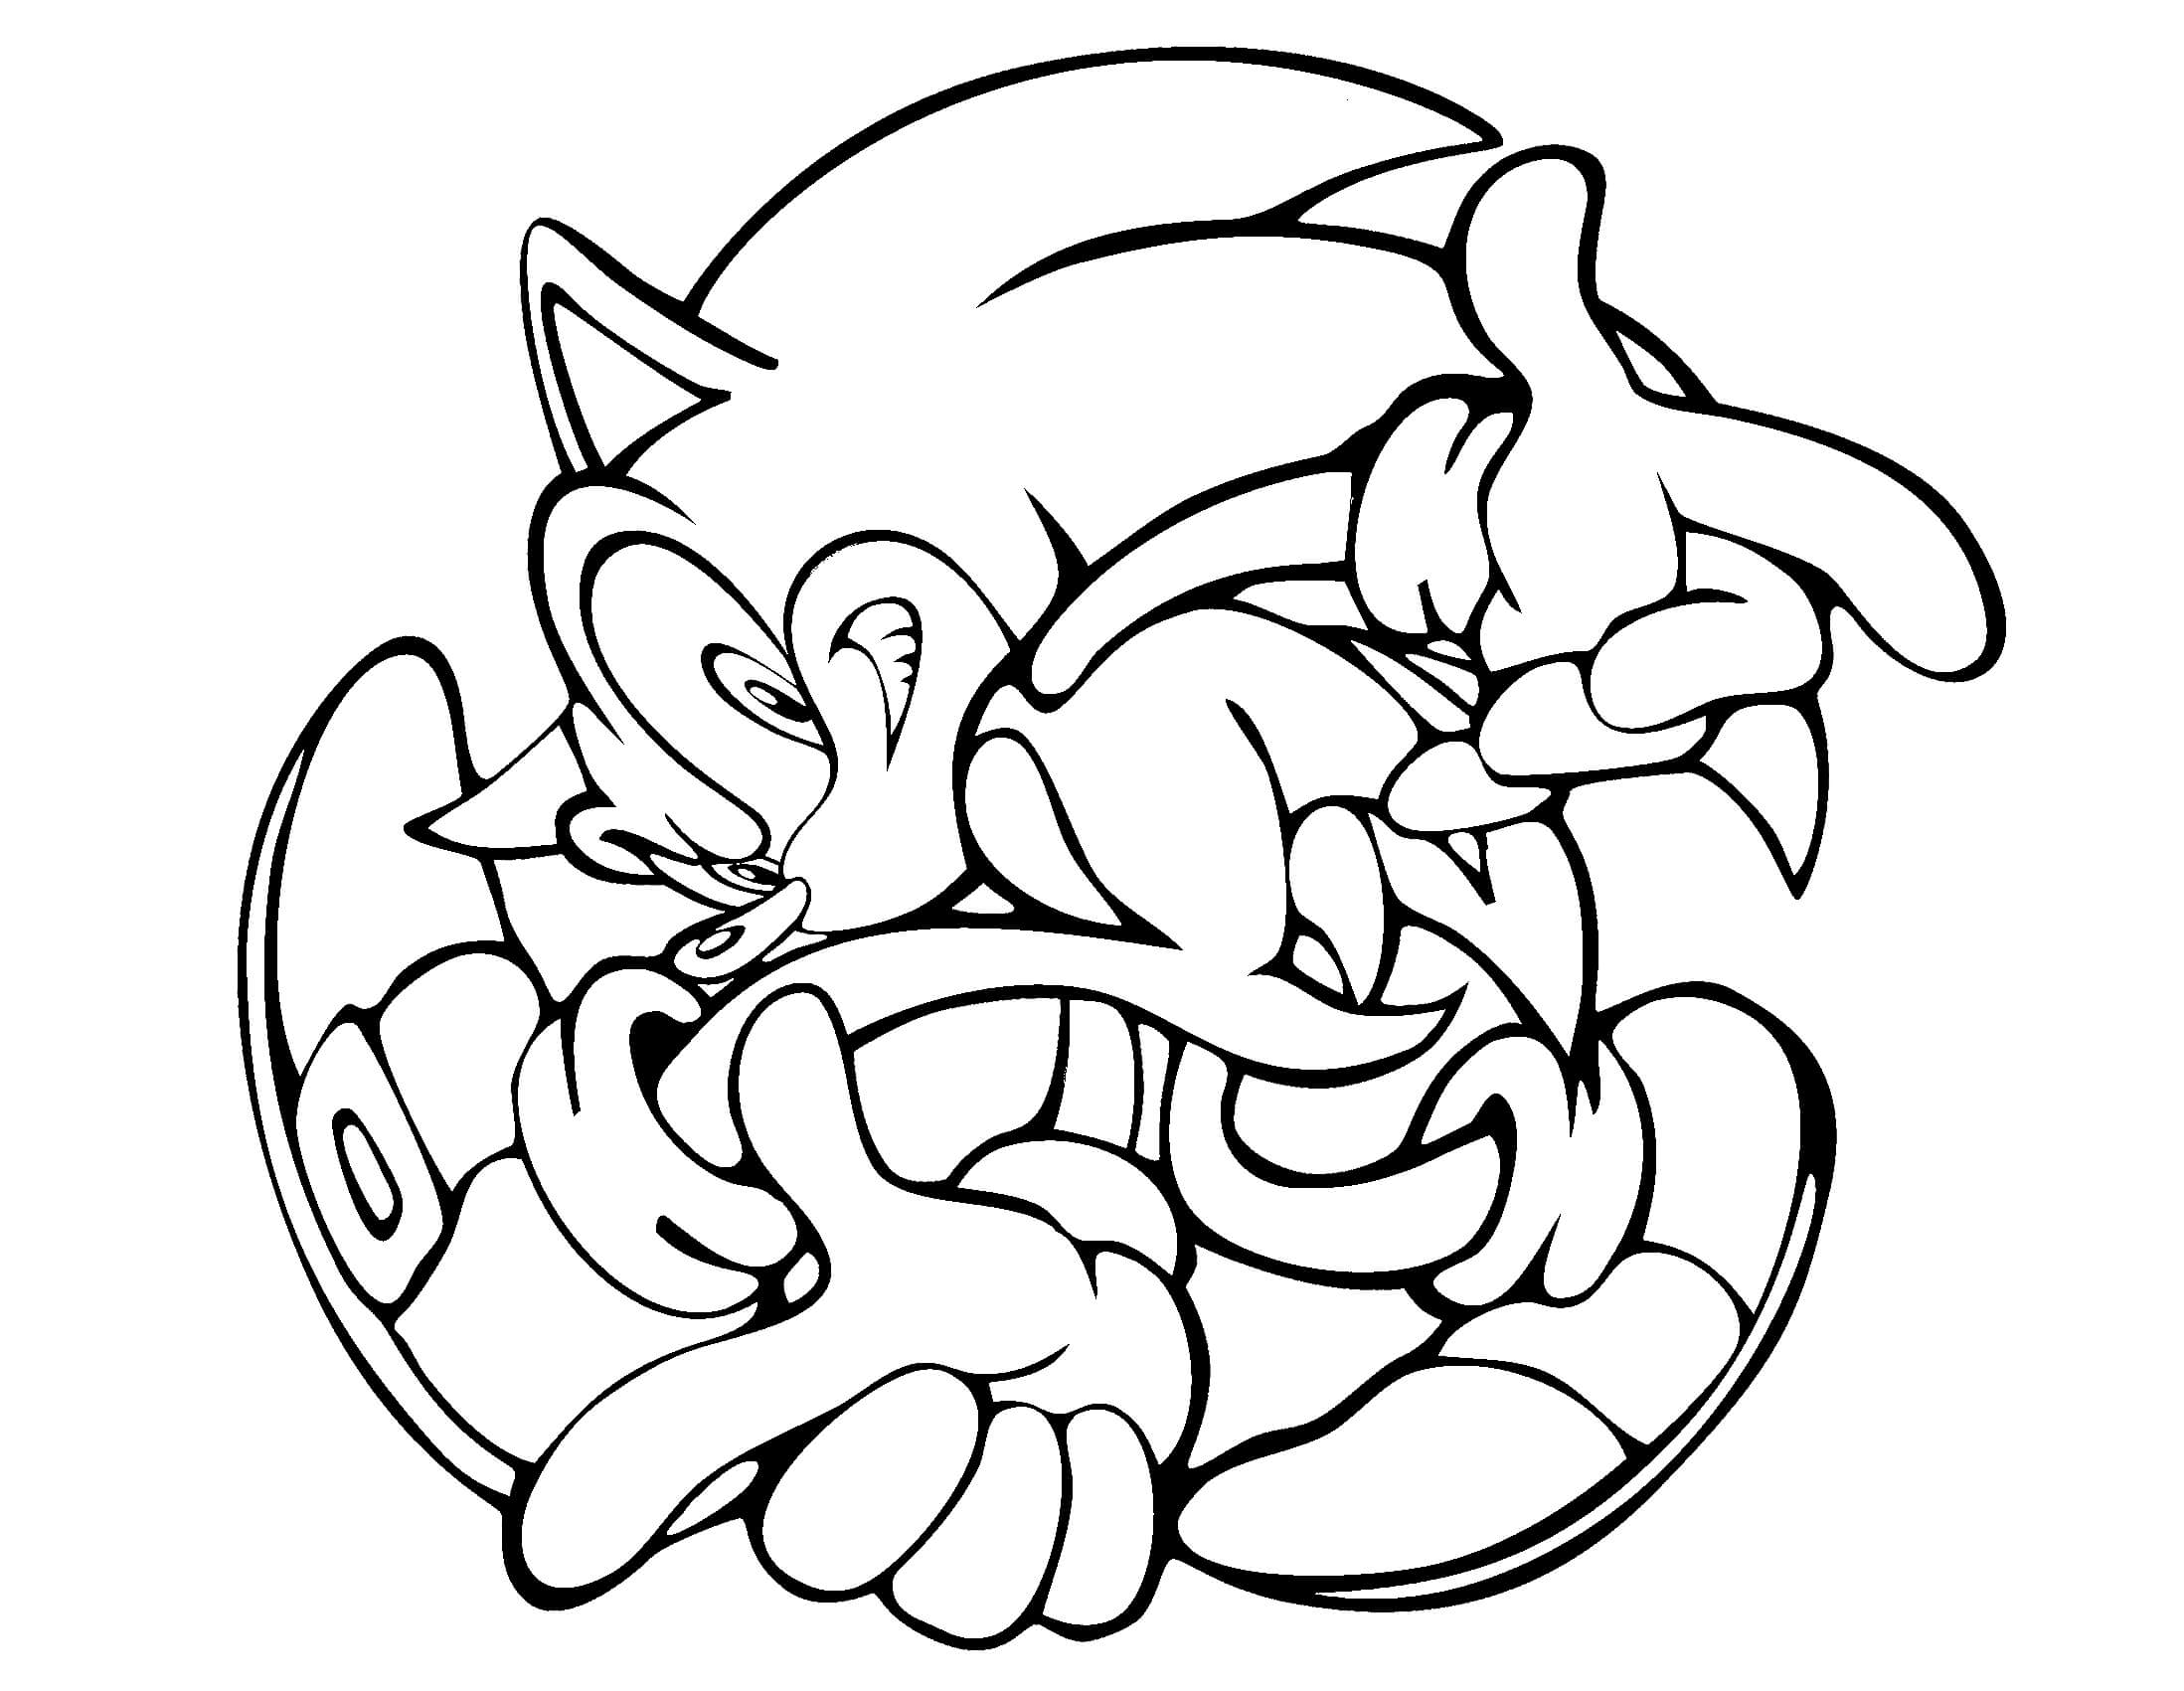 sonic coloring pages - saving amy sonic coloring pages sketch templates